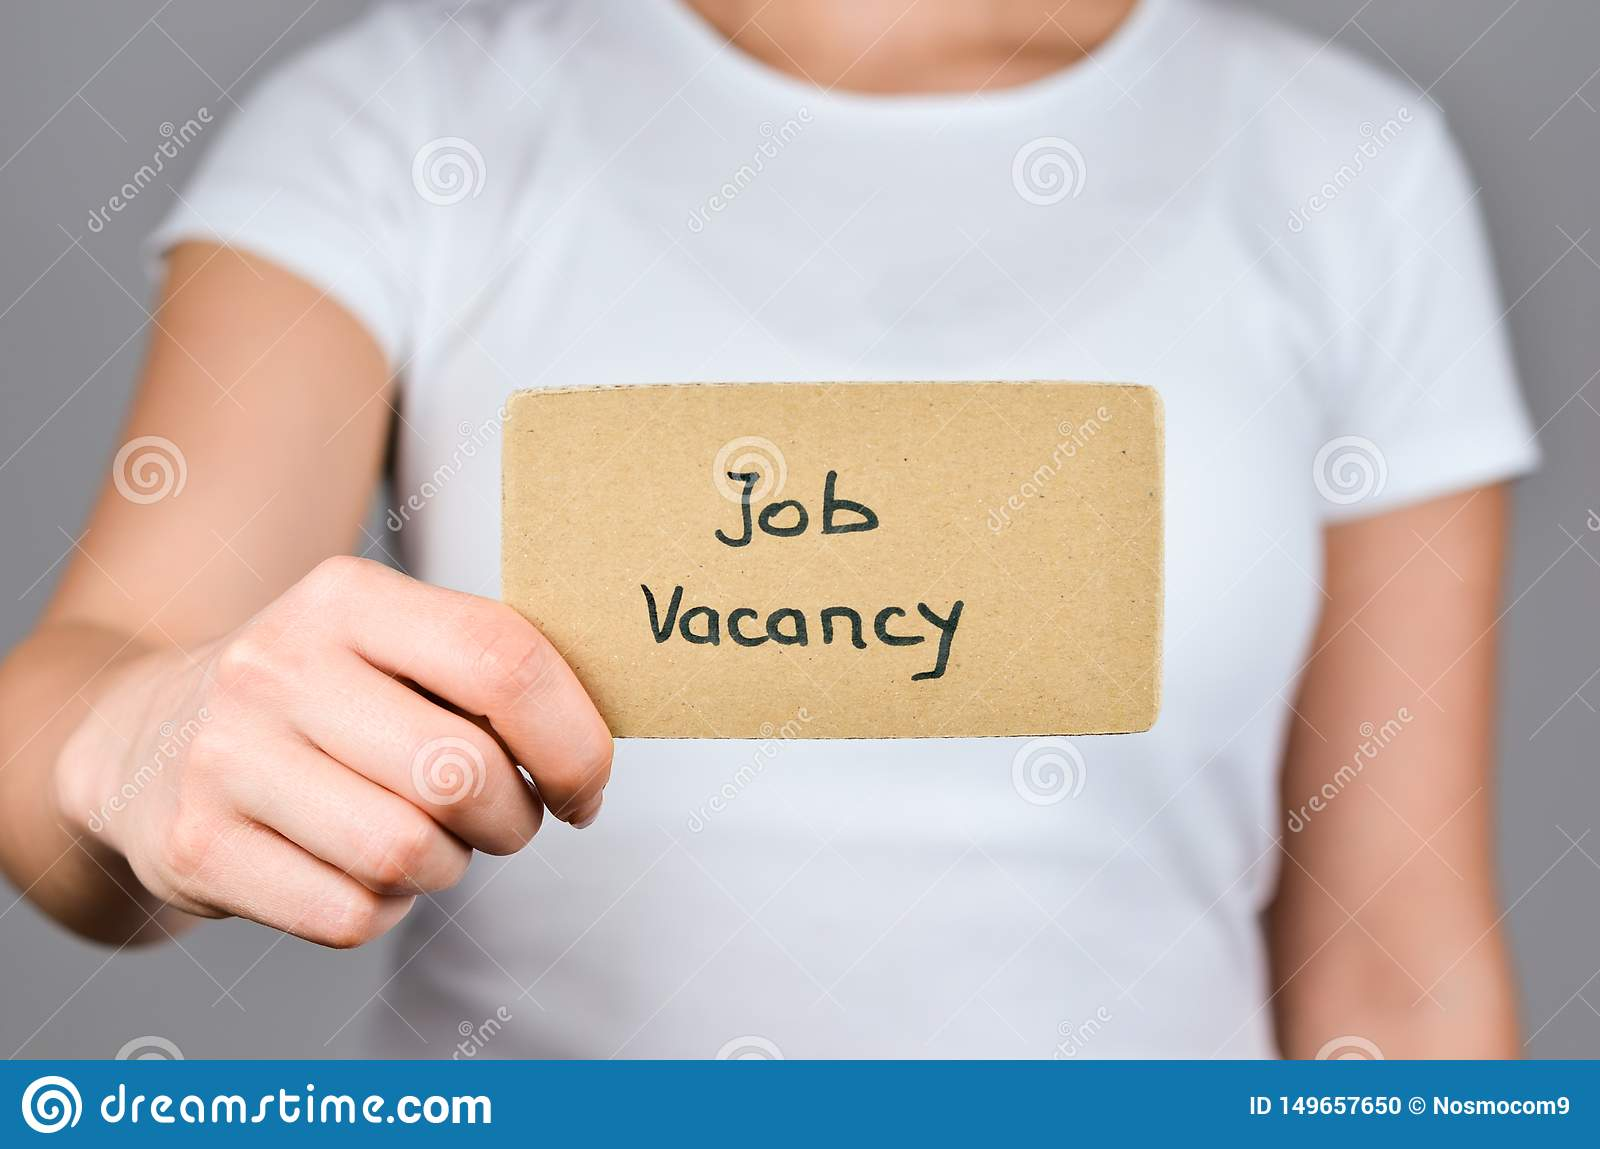 Job Vacancy and   Offers